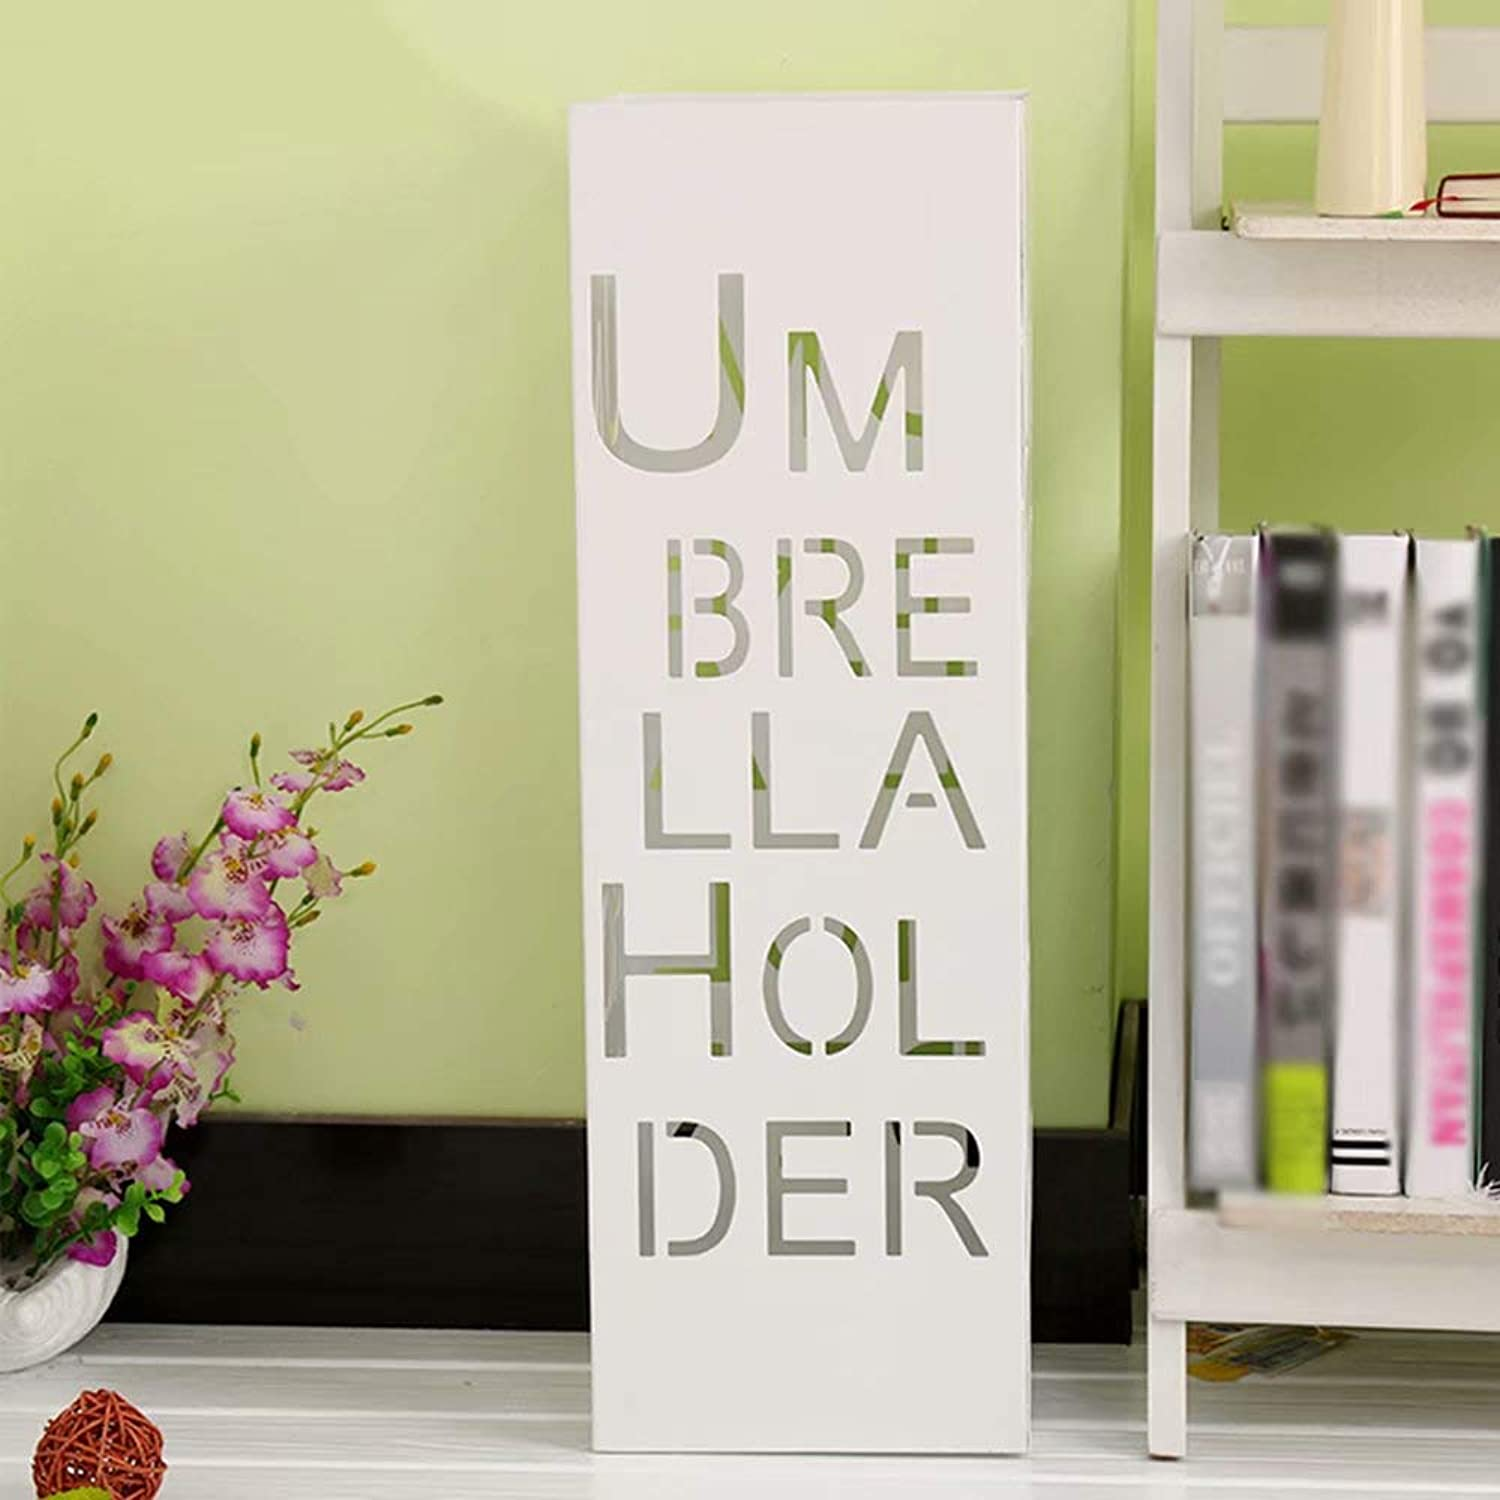 Umbrella Stand Holder Square Hooks for Home and Office, Metal